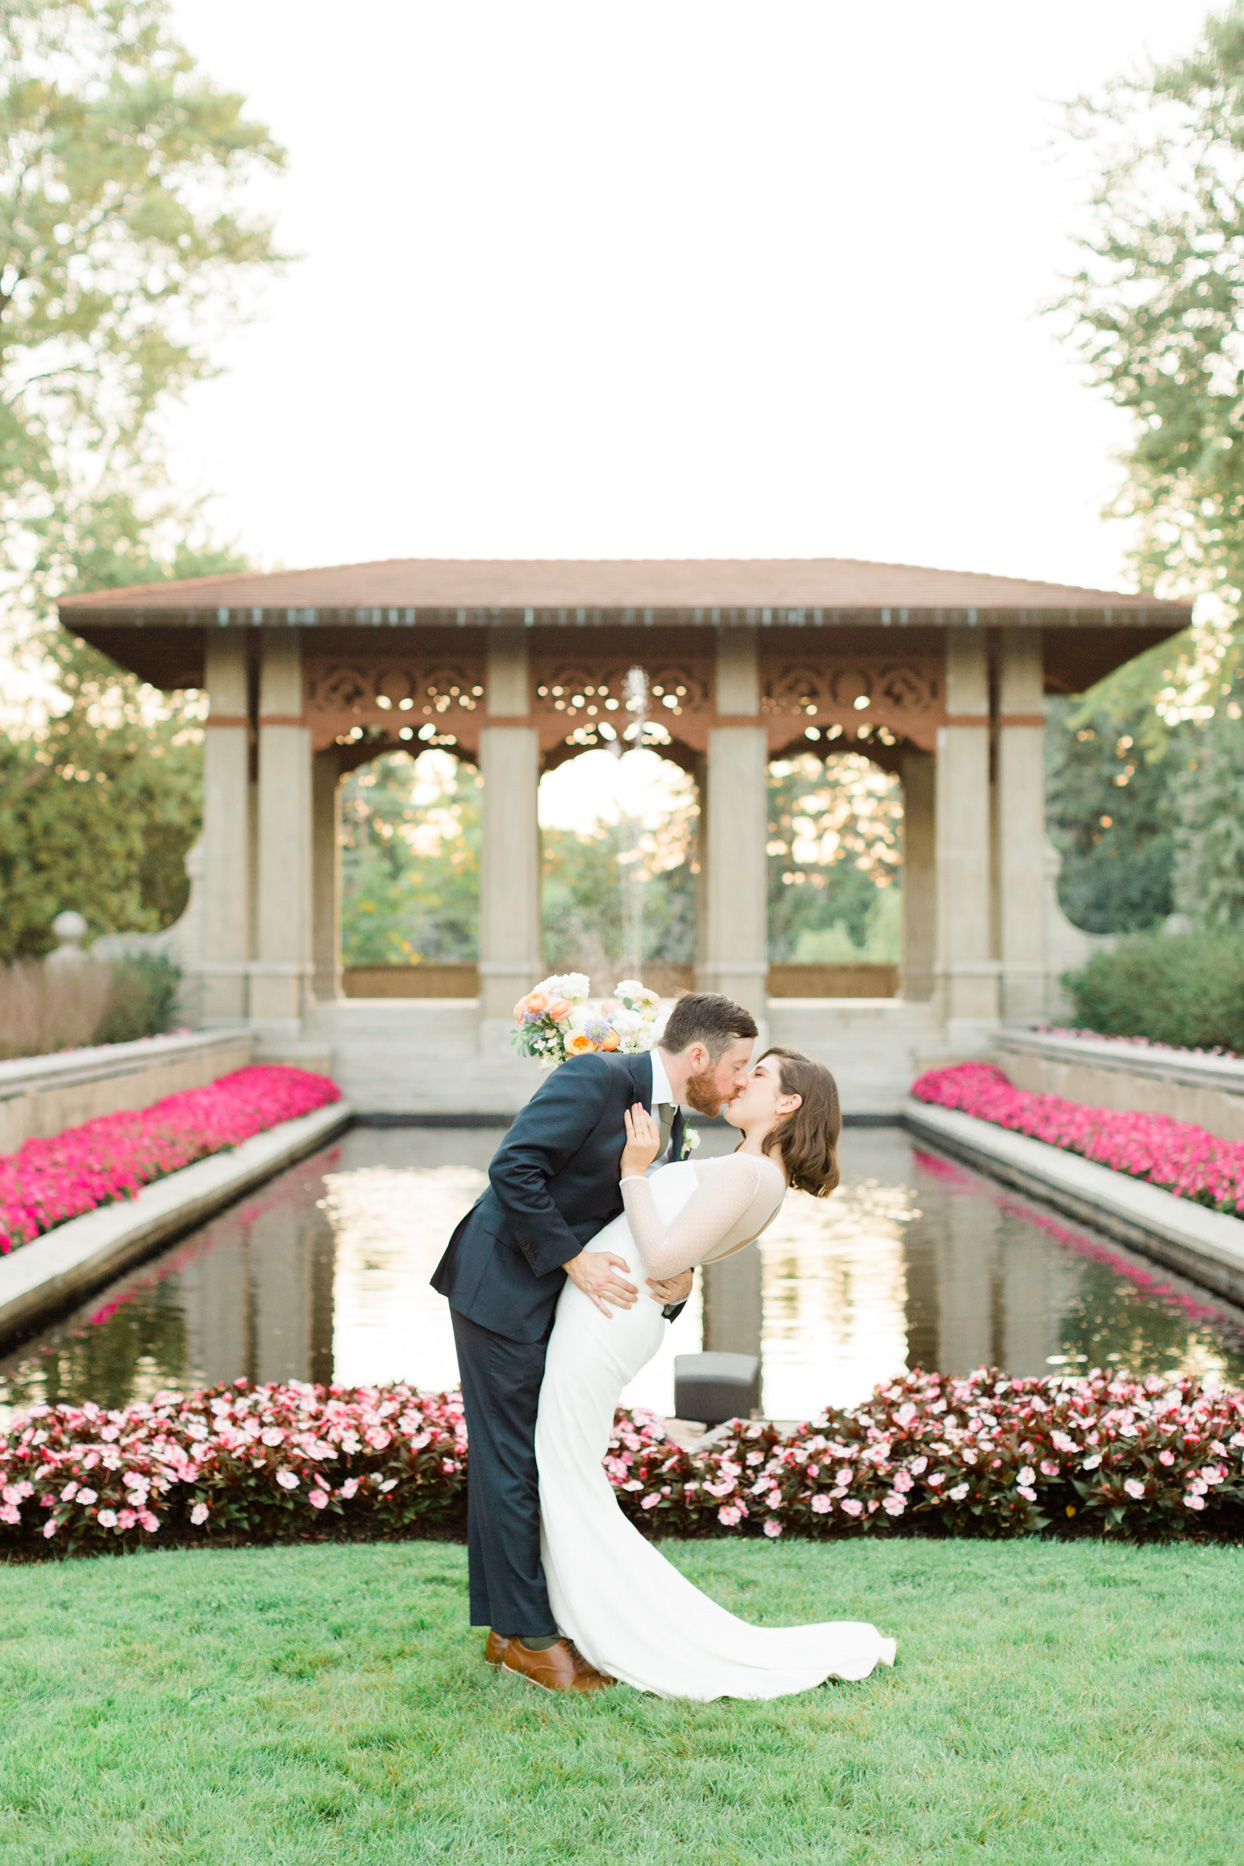 wedding couple kiss during garden ceremony